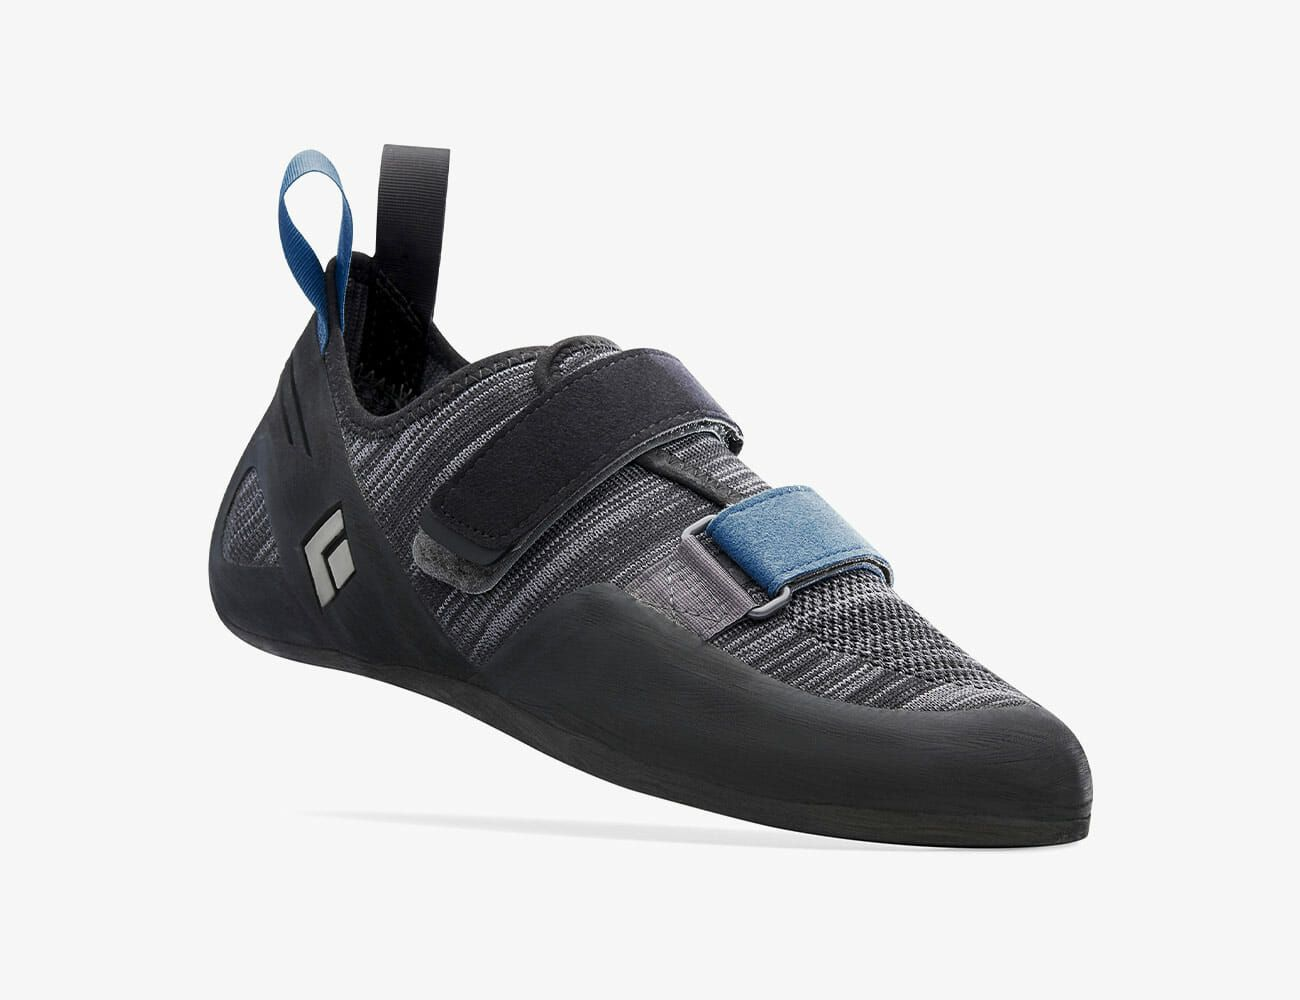 sale usa online fantastic savings factory authentic The Best Rock Climbing Shoes of 2019 • Gear Patrol